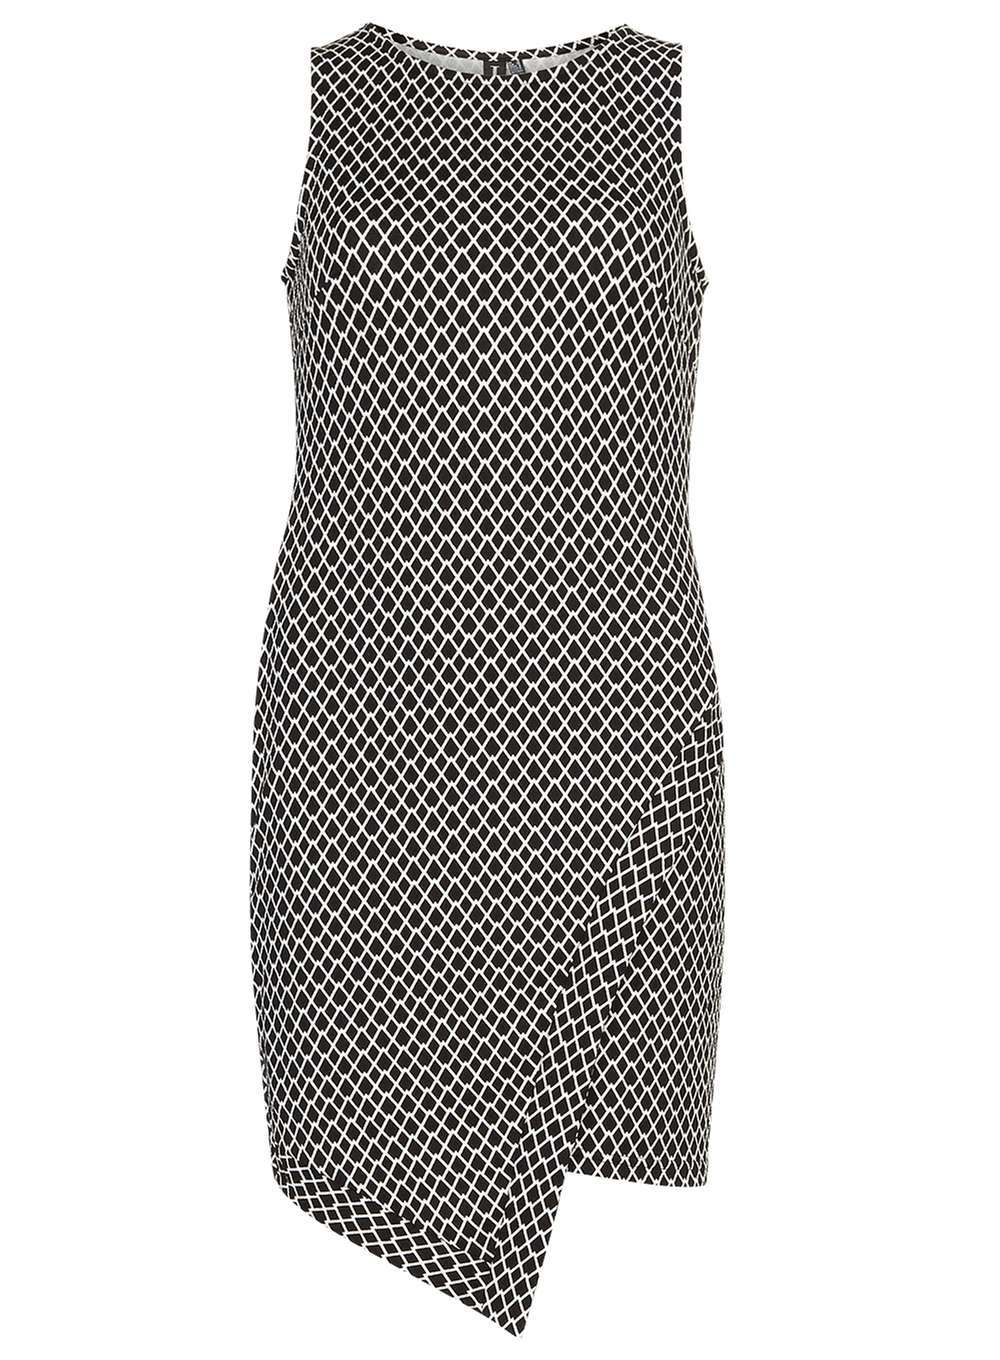 Womens **Izabel London Black And White Dress Black - style: shift; fit: tailored/fitted; sleeve style: sleeveless; secondary colour: white; predominant colour: black; occasions: evening; length: just above the knee; fibres: polyester/polyamide - stretch; neckline: crew; sleeve length: sleeveless; pattern type: fabric; pattern: patterned/print; texture group: brocade/jacquard; season: a/w 2016; wardrobe: event